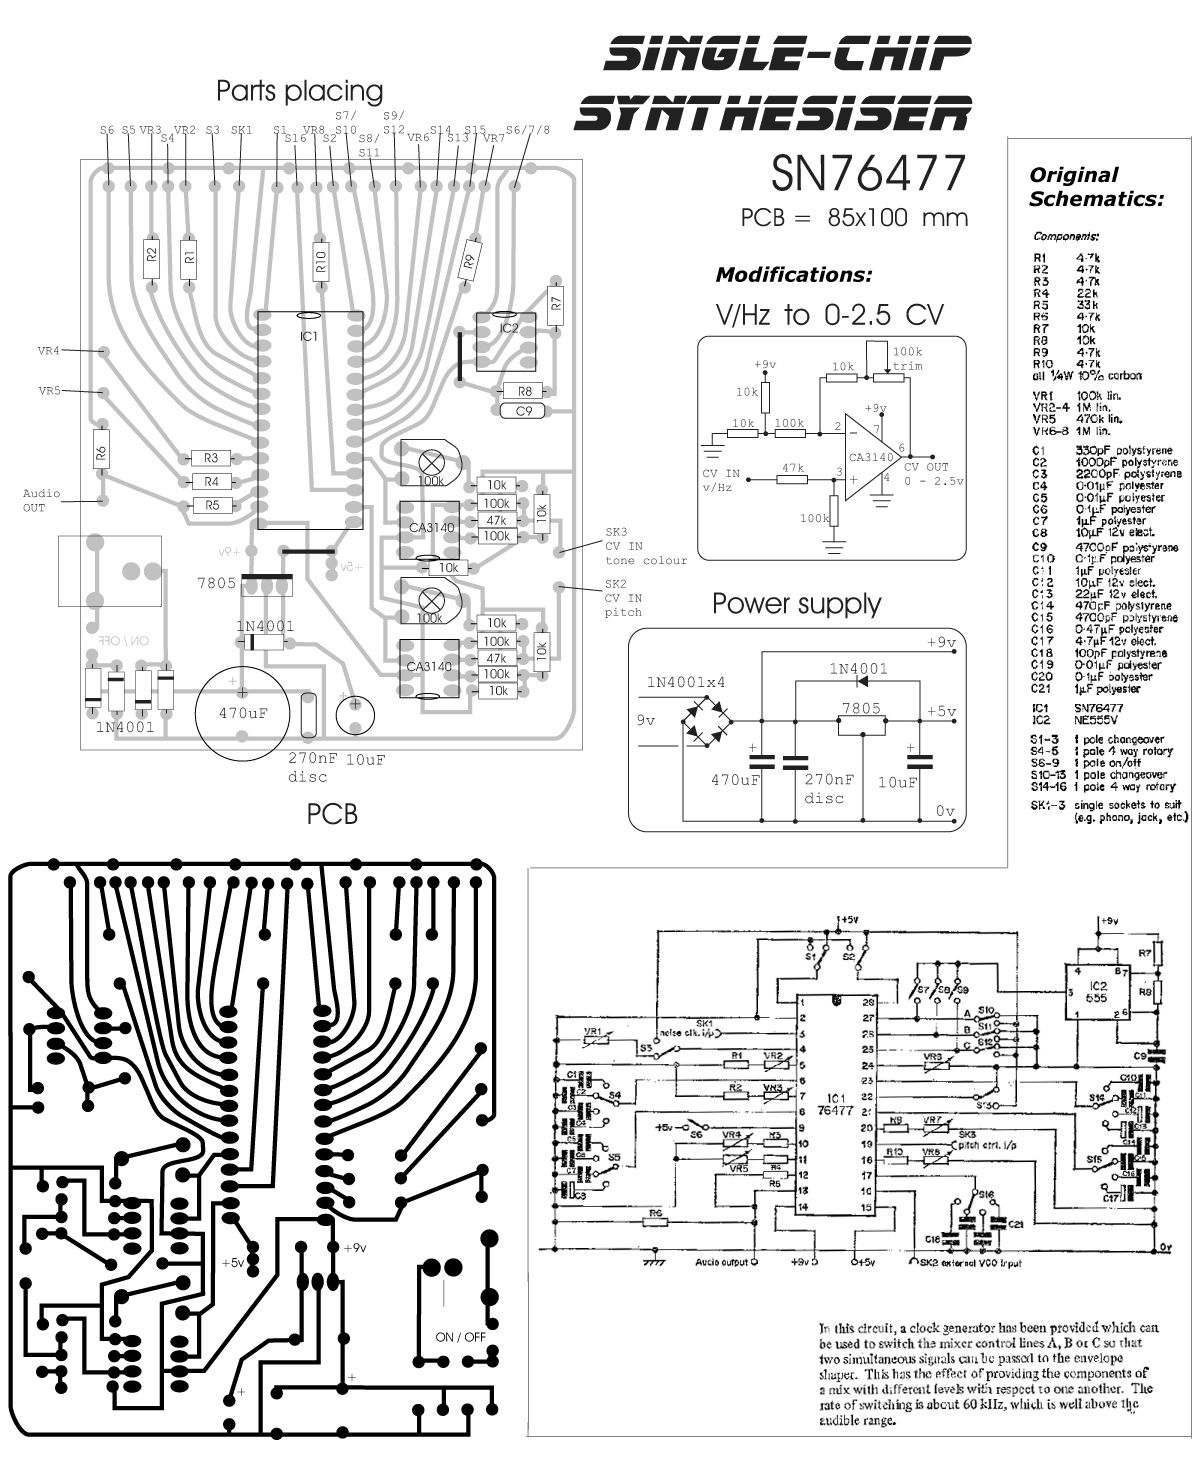 space invaders sound chip - Google Search | synthcastle | Pinterest ...